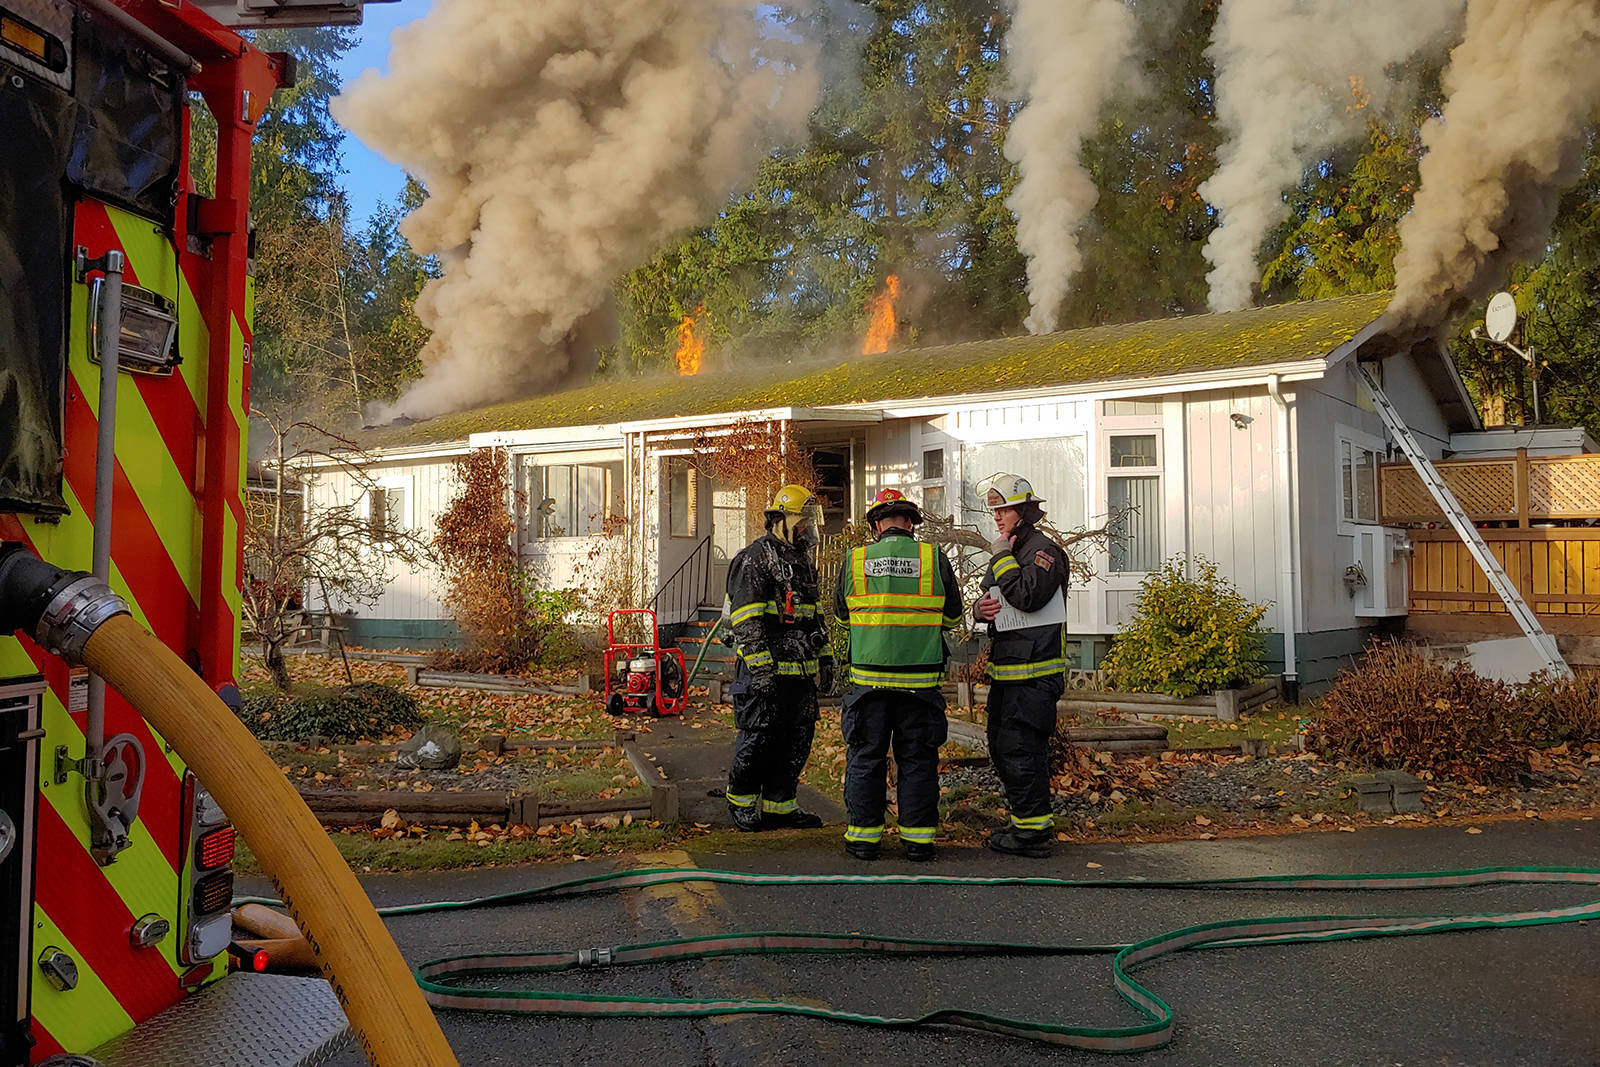 Nanaimo Fire Rescue battled a blaze at Brooksdale Mobile Home Park on Twelfth Street in Nanaimo the morning of Nov. 1. (CHRIS BUSH/News Bulletin)